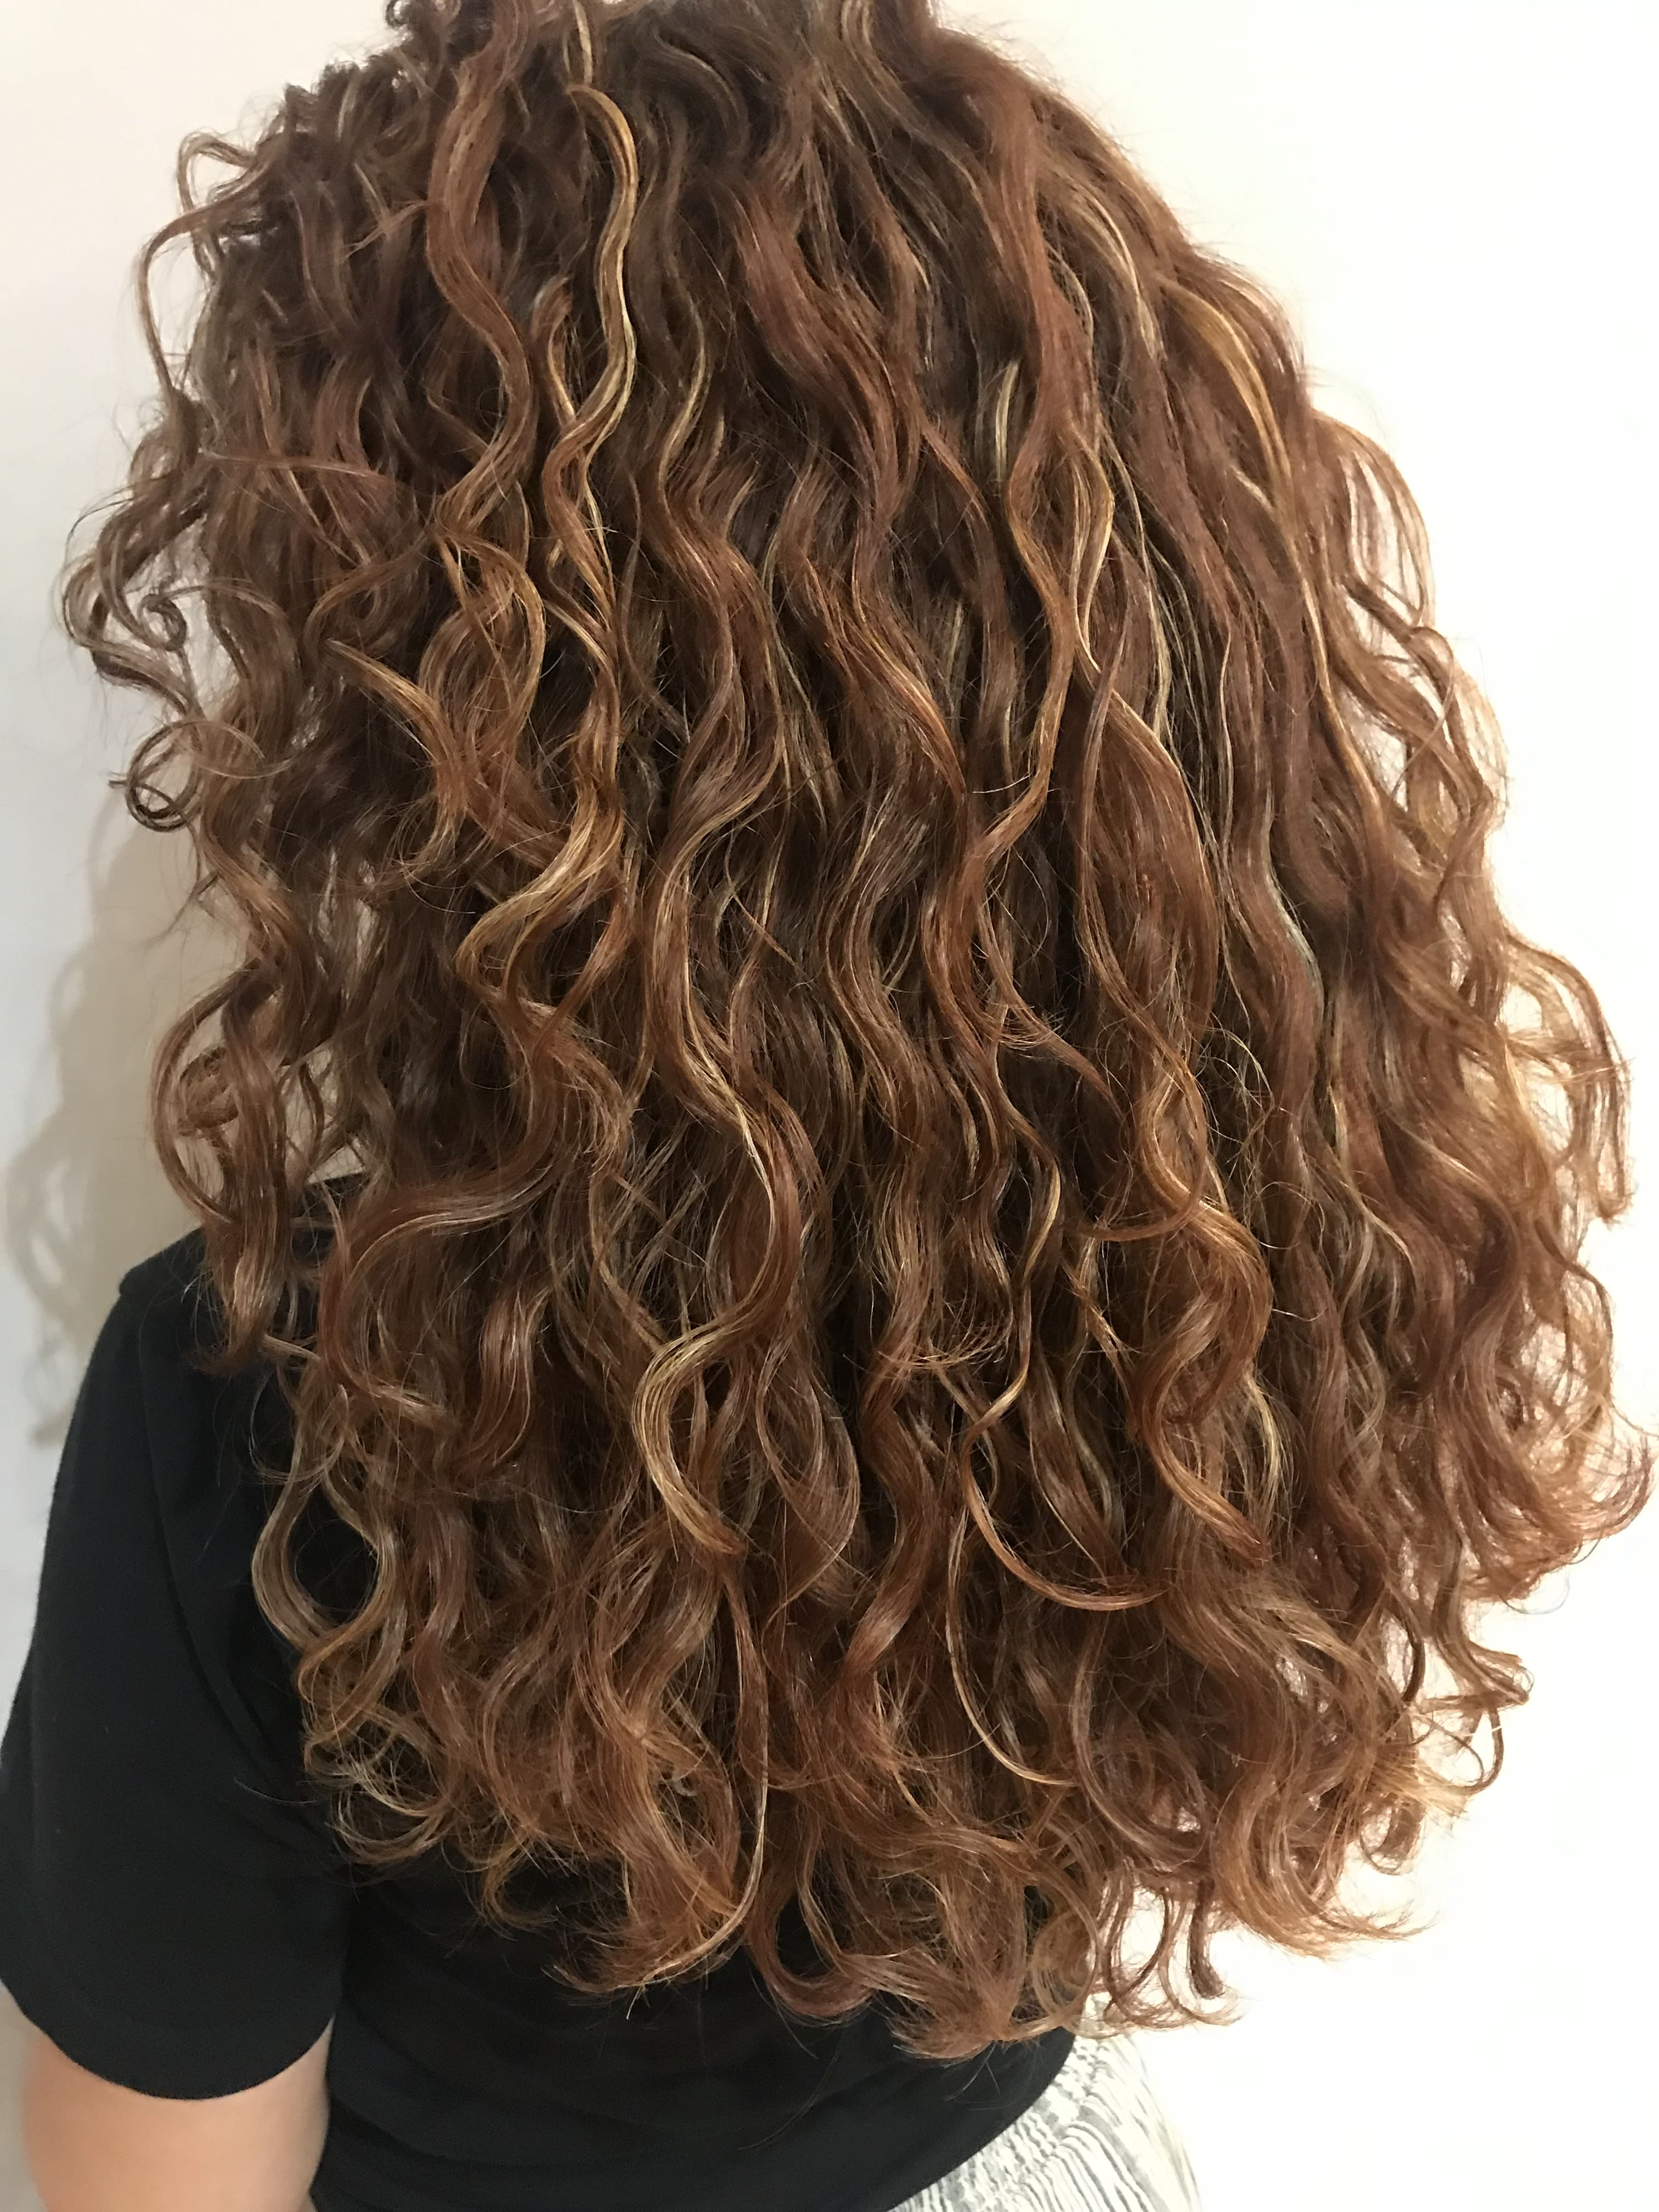 What is a Rezo Cut Most Flattering Cuts For Curly Hair